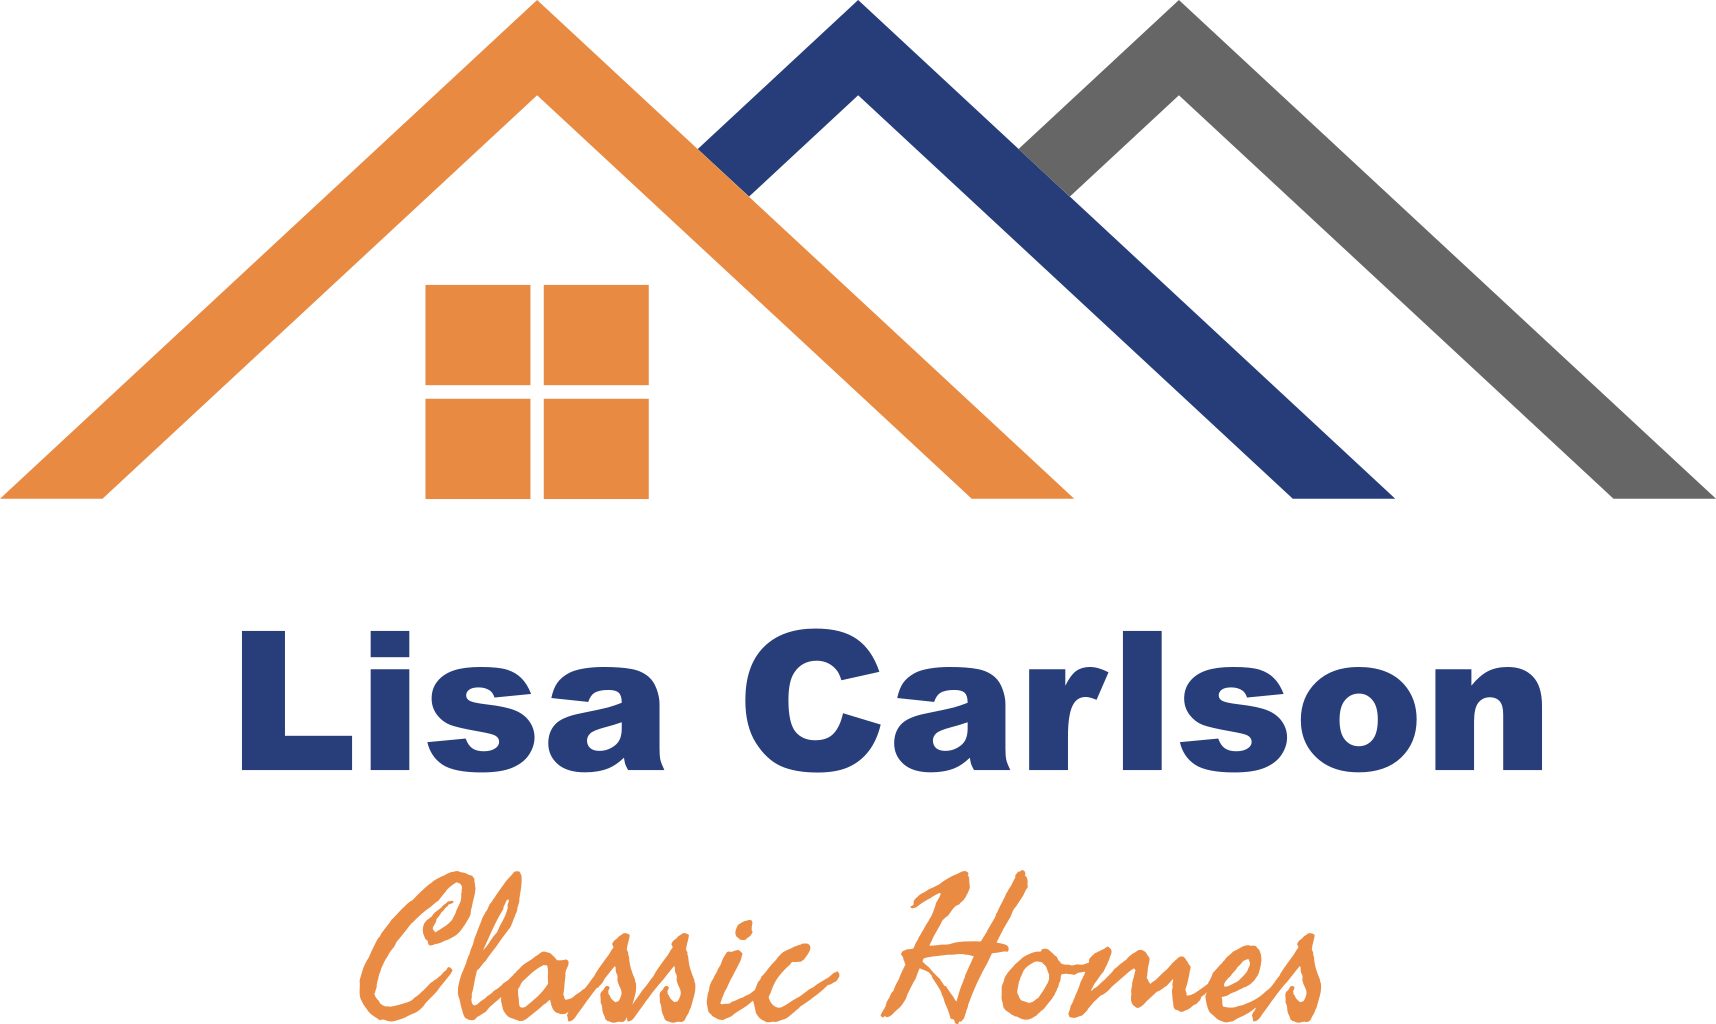 Lisa Carlson Classic Homes